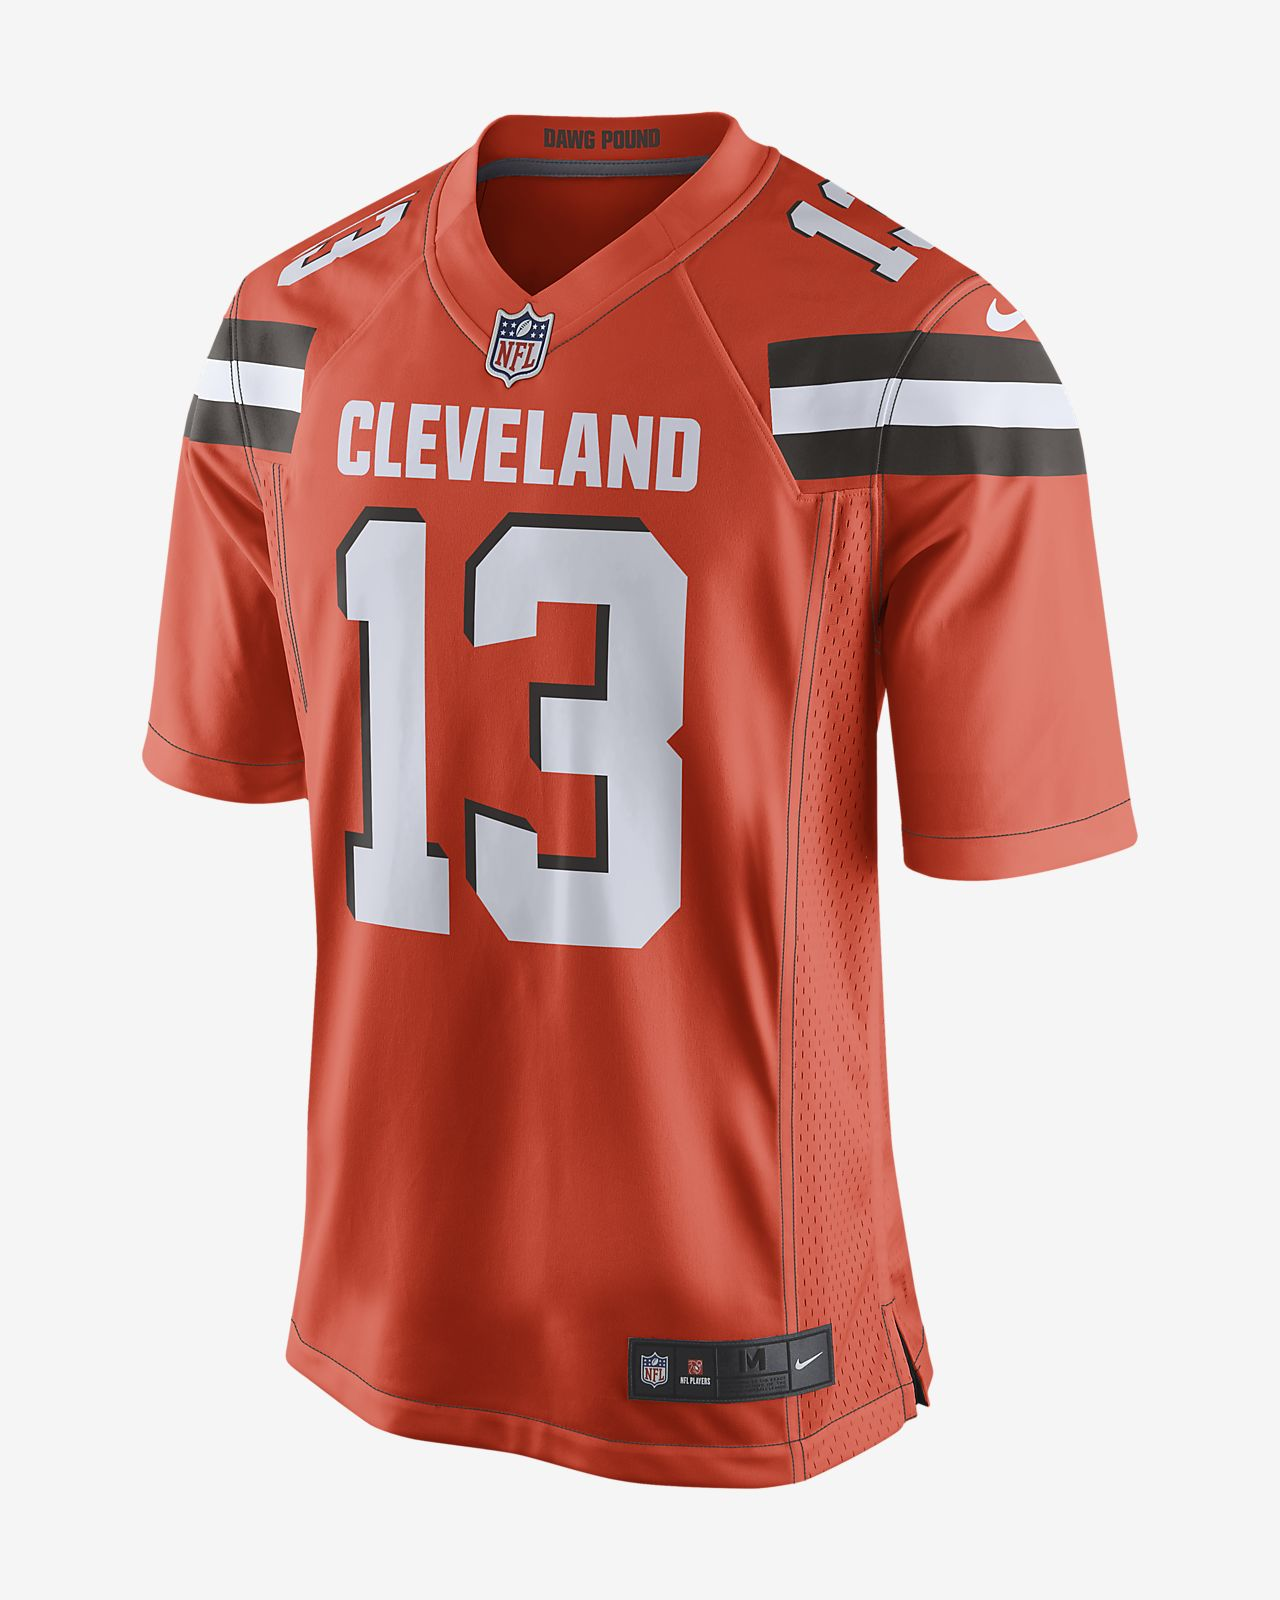 free shipping 881e1 82146 NFL Cleveland Browns (Odell Beckham Jr.) Men's Game Football Jersey